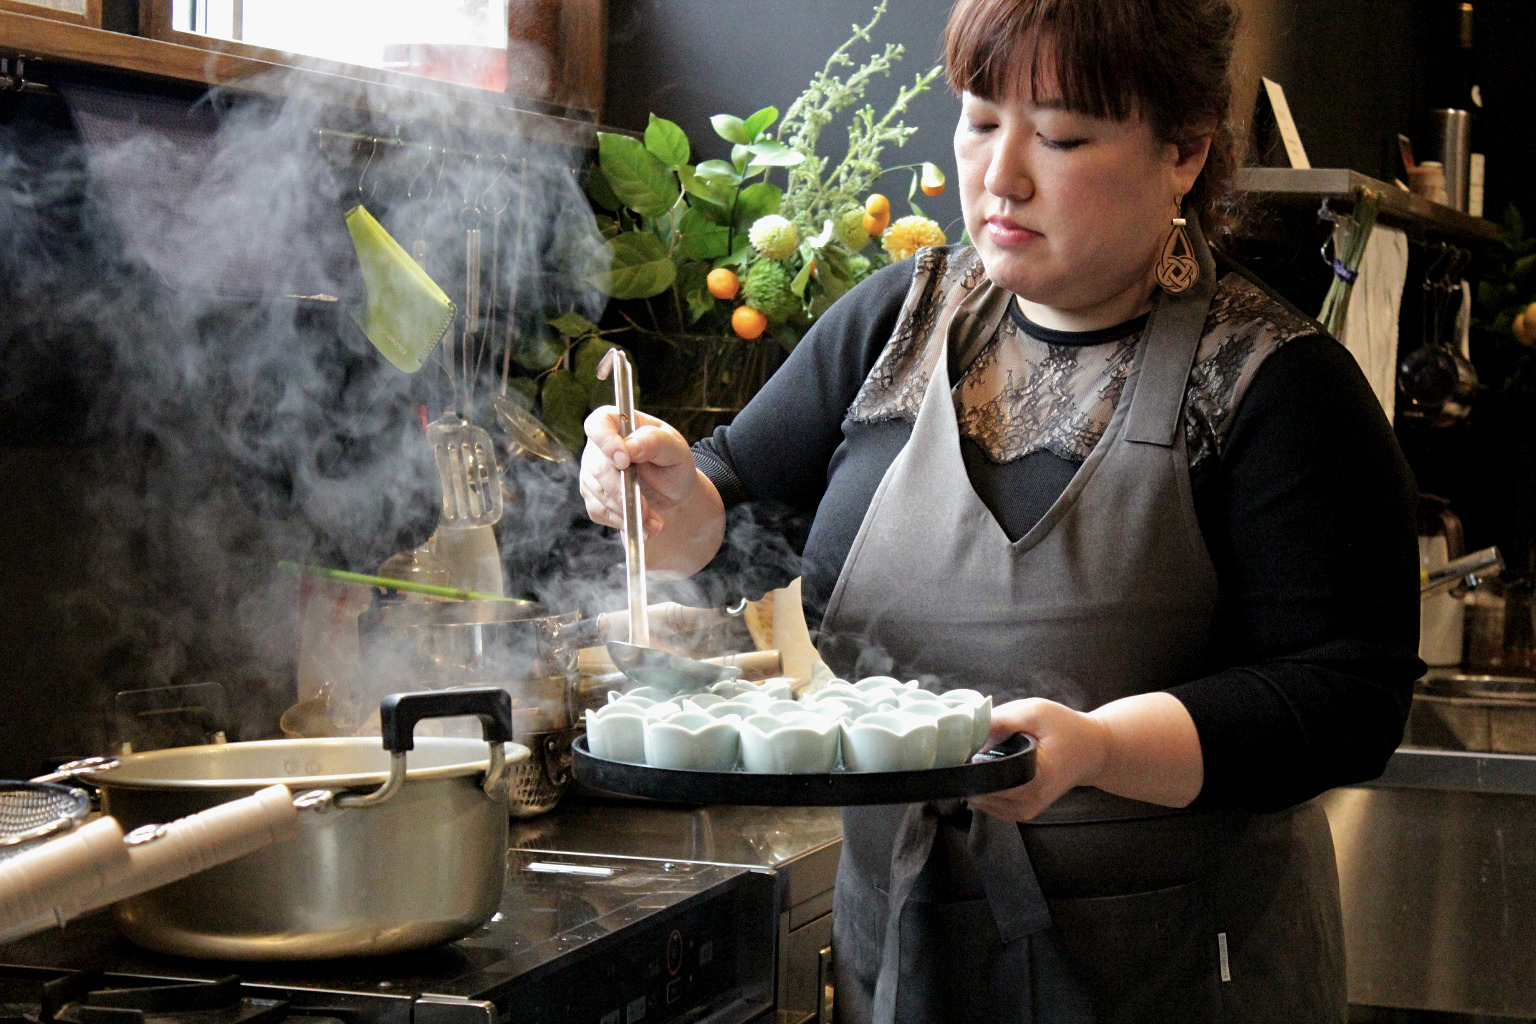 Naoko dishes out some freshly cooked fish cake dumpling soup during her cooking class in Kanazawa, Japan